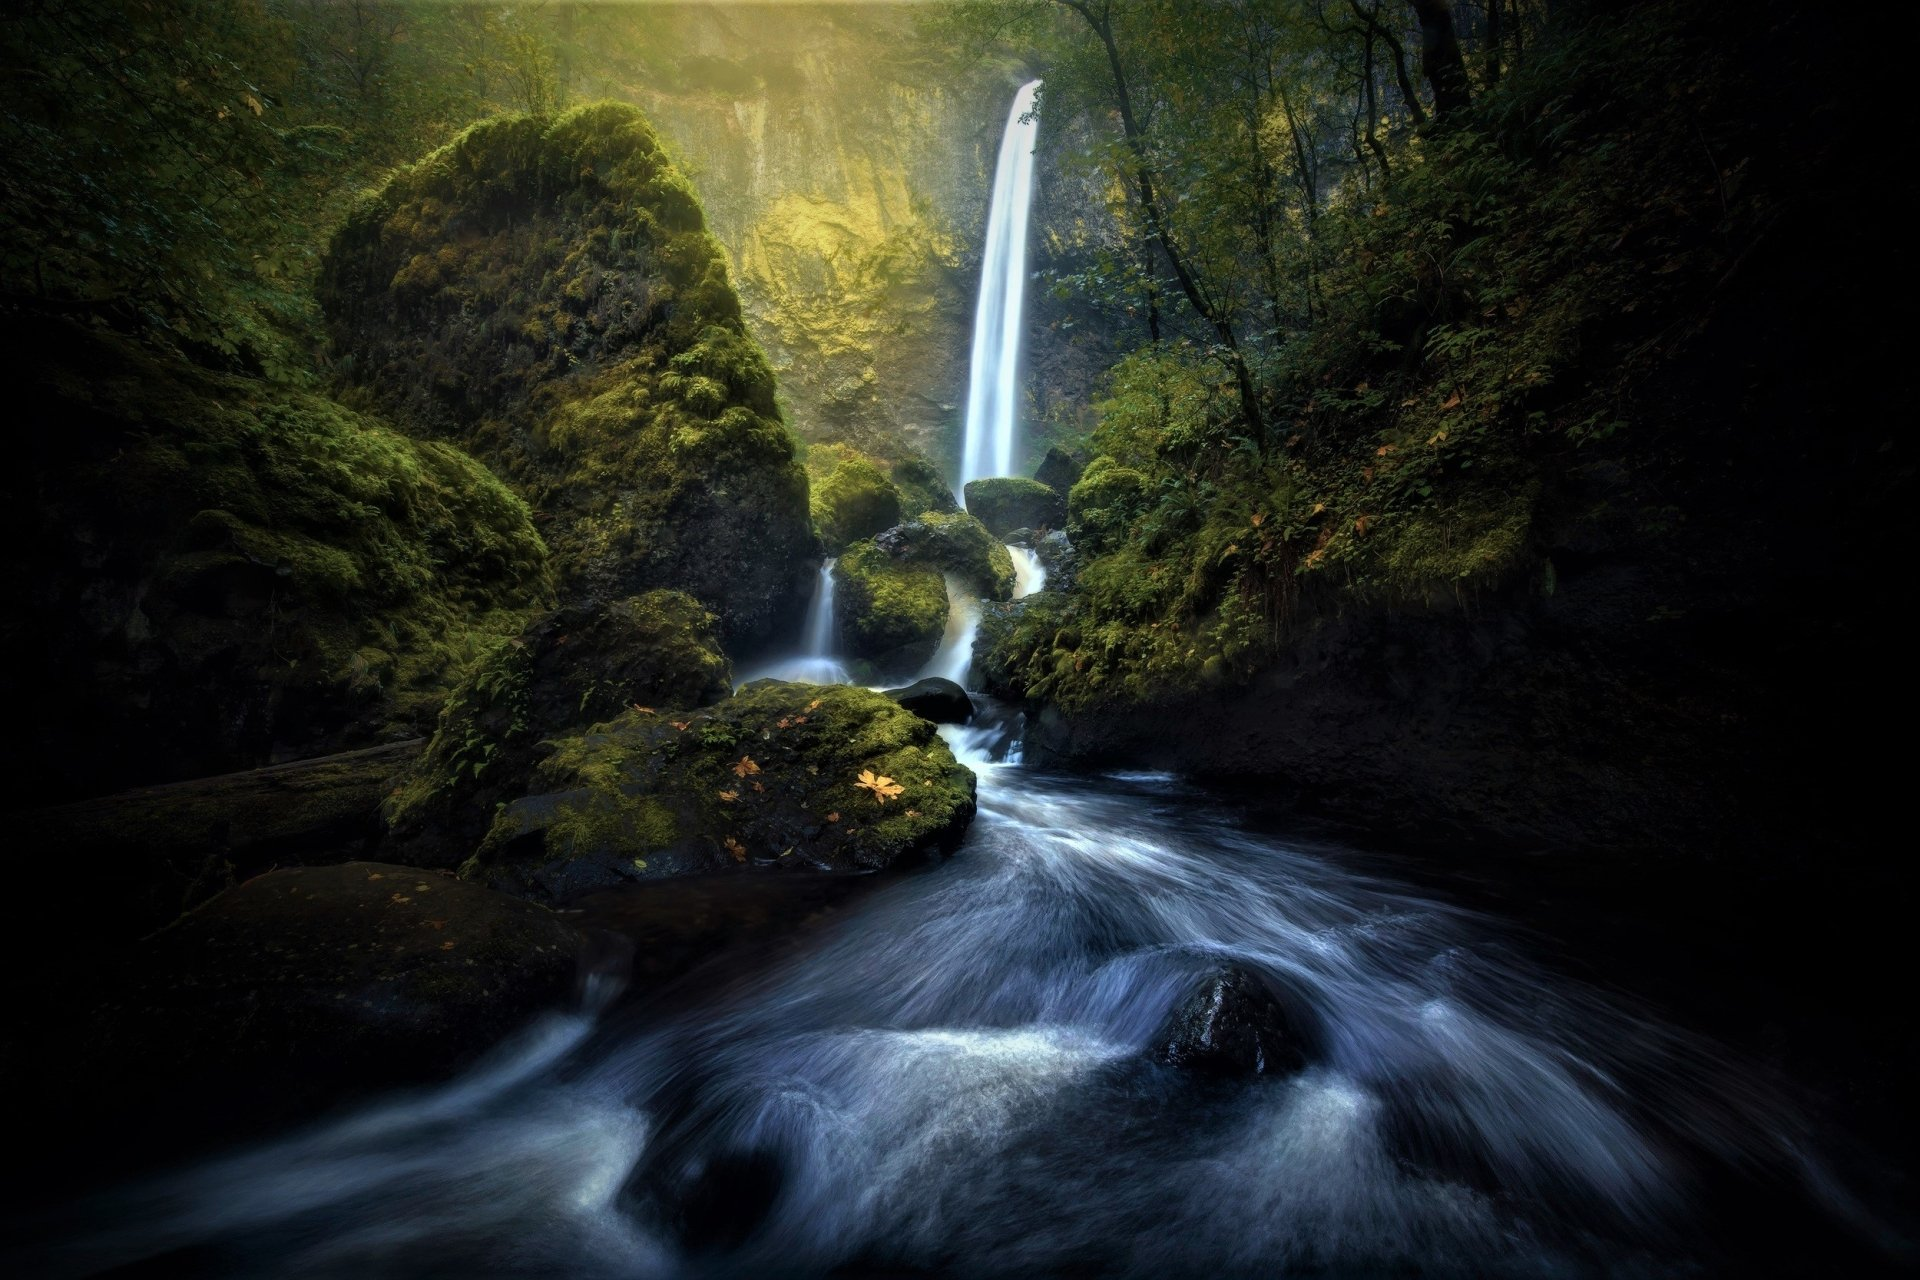 Earth - Waterfall  Green Earth Moss Rock River Wallpaper